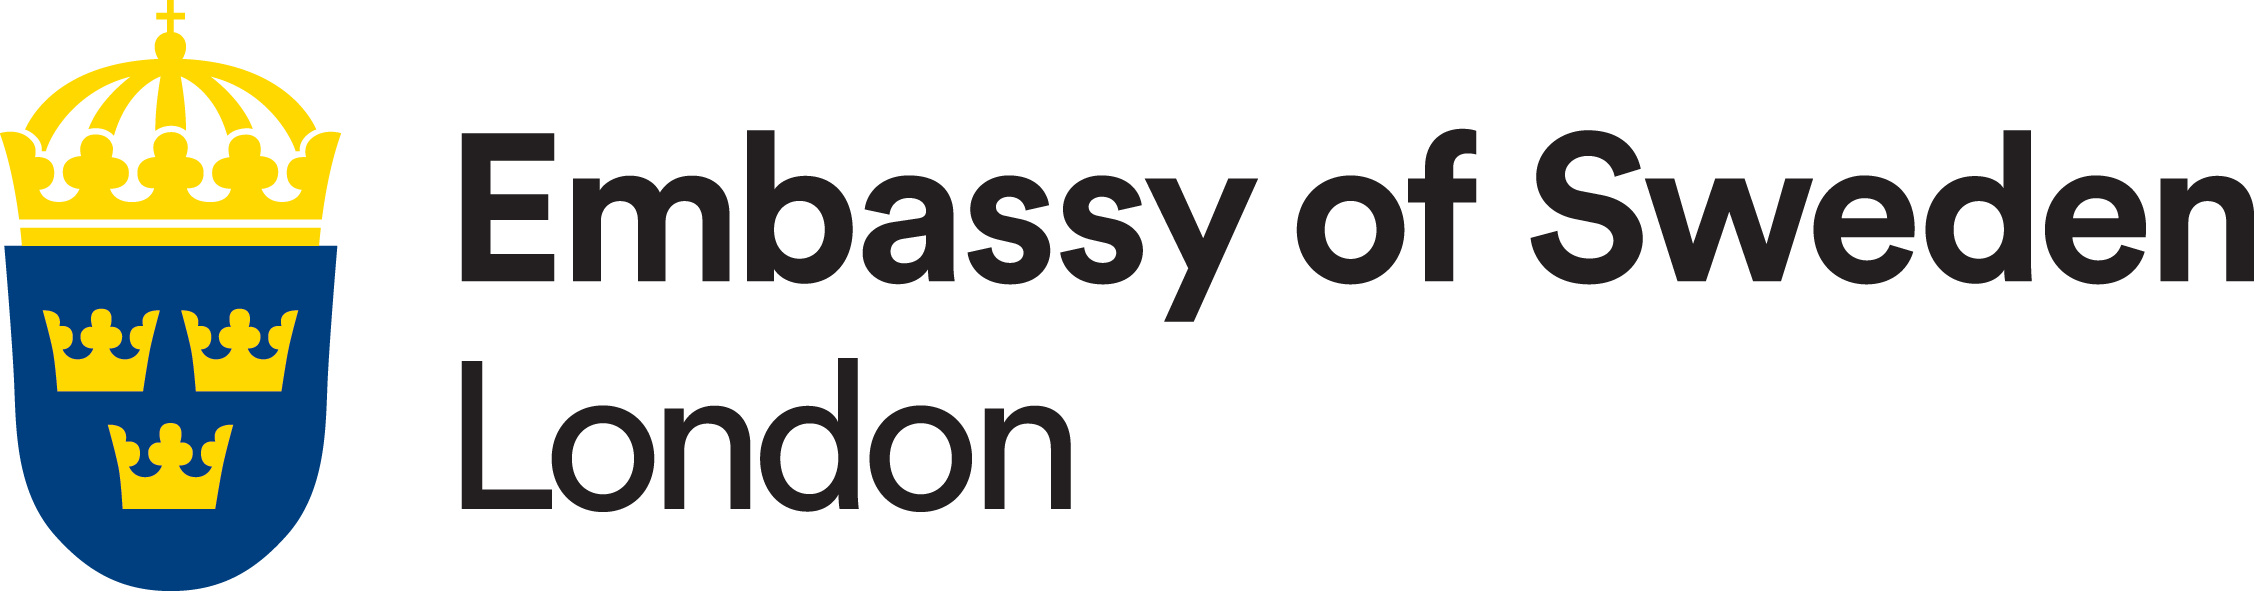 London Embassy of Sweden Logo